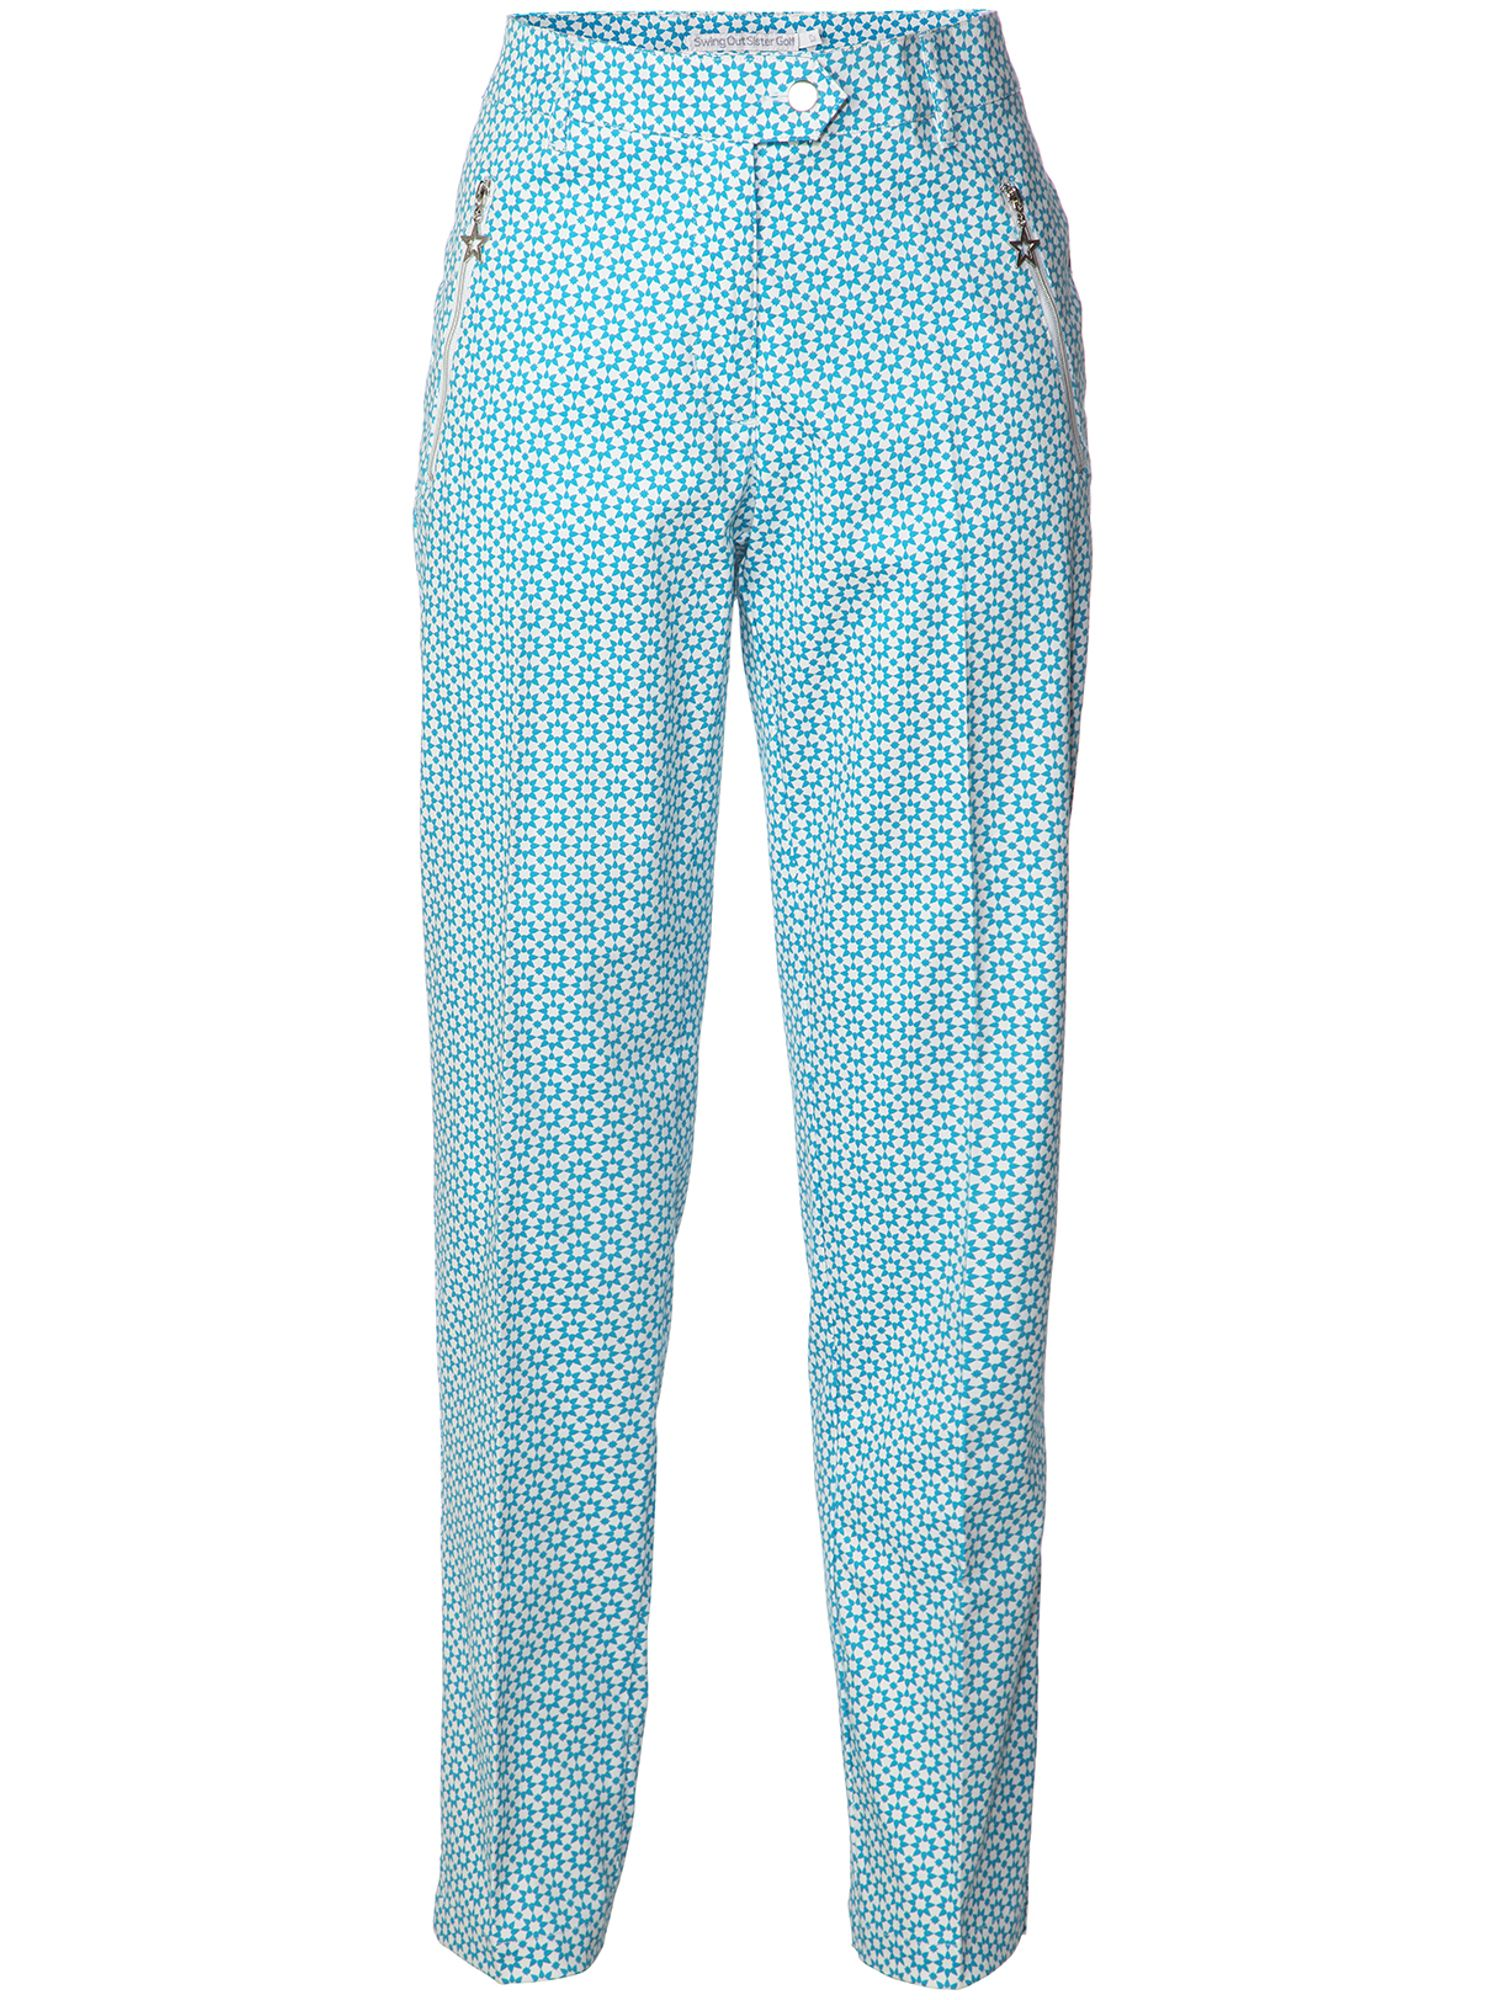 Swing Out Sister Diana 78 Trousers, Blue